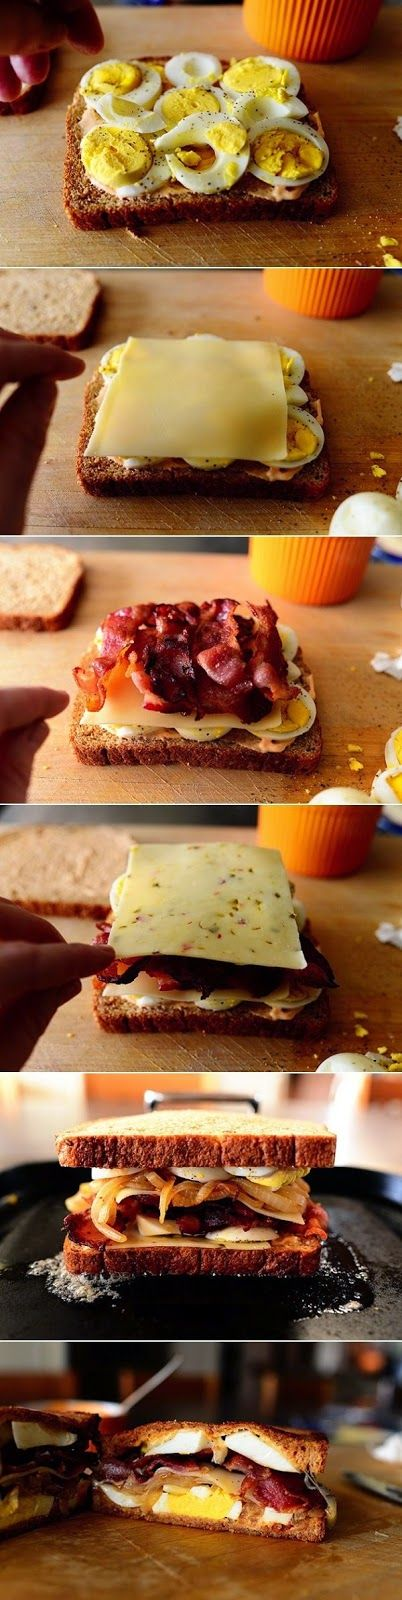 all-food-drink: Ultimate Grilled Cheese Sandwich